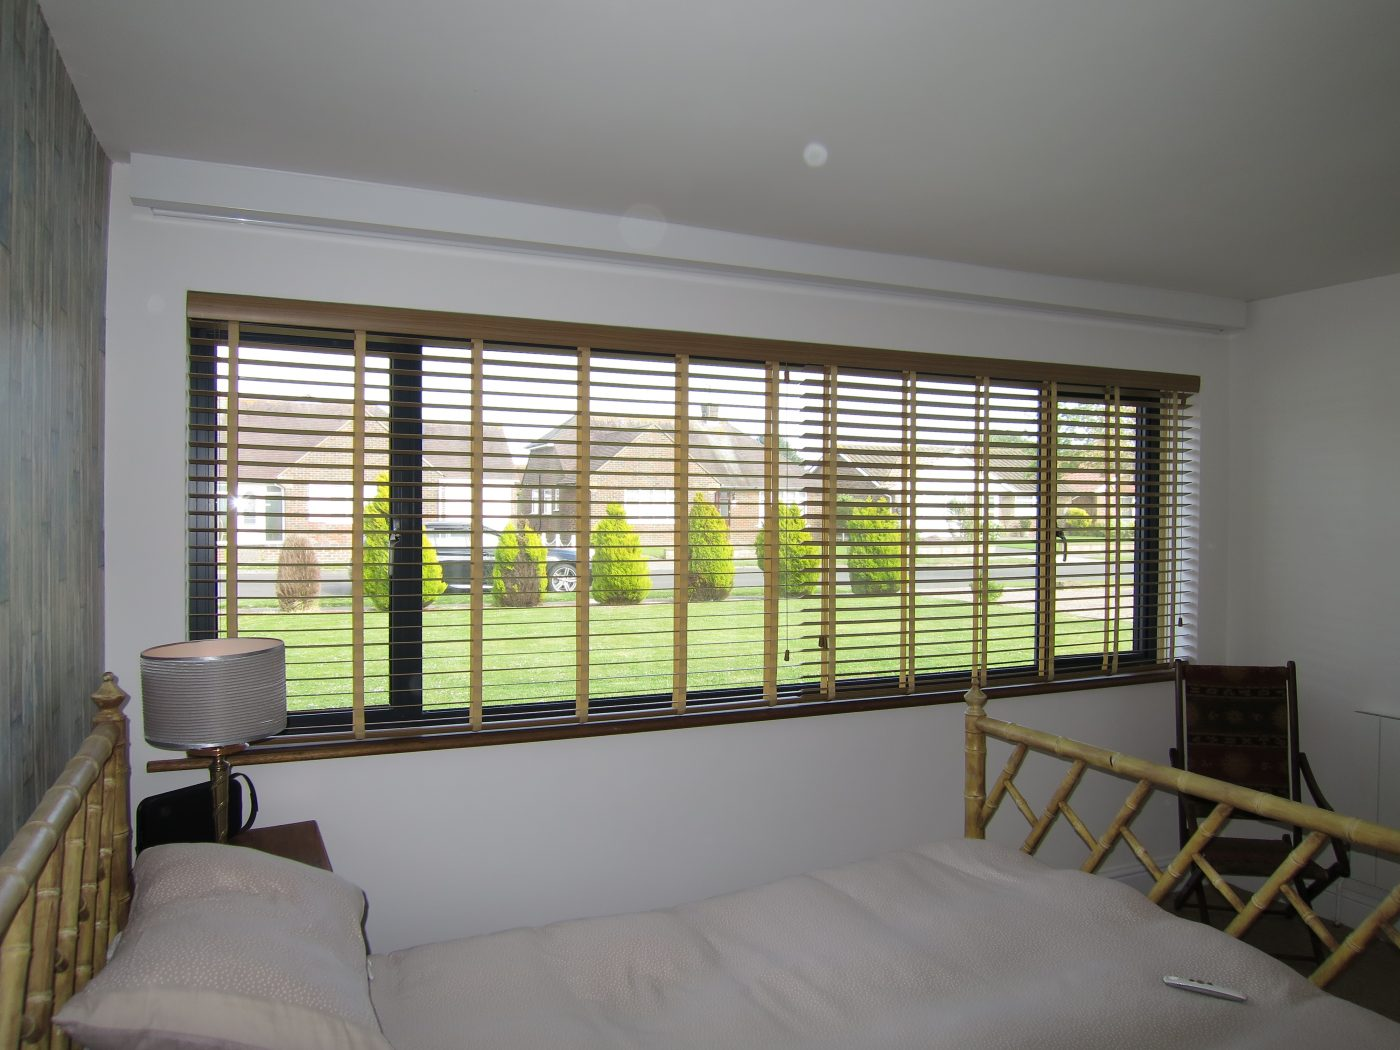 window roof shading motorized shades louvered renson automated exterior electric vertical camargue denver blinds